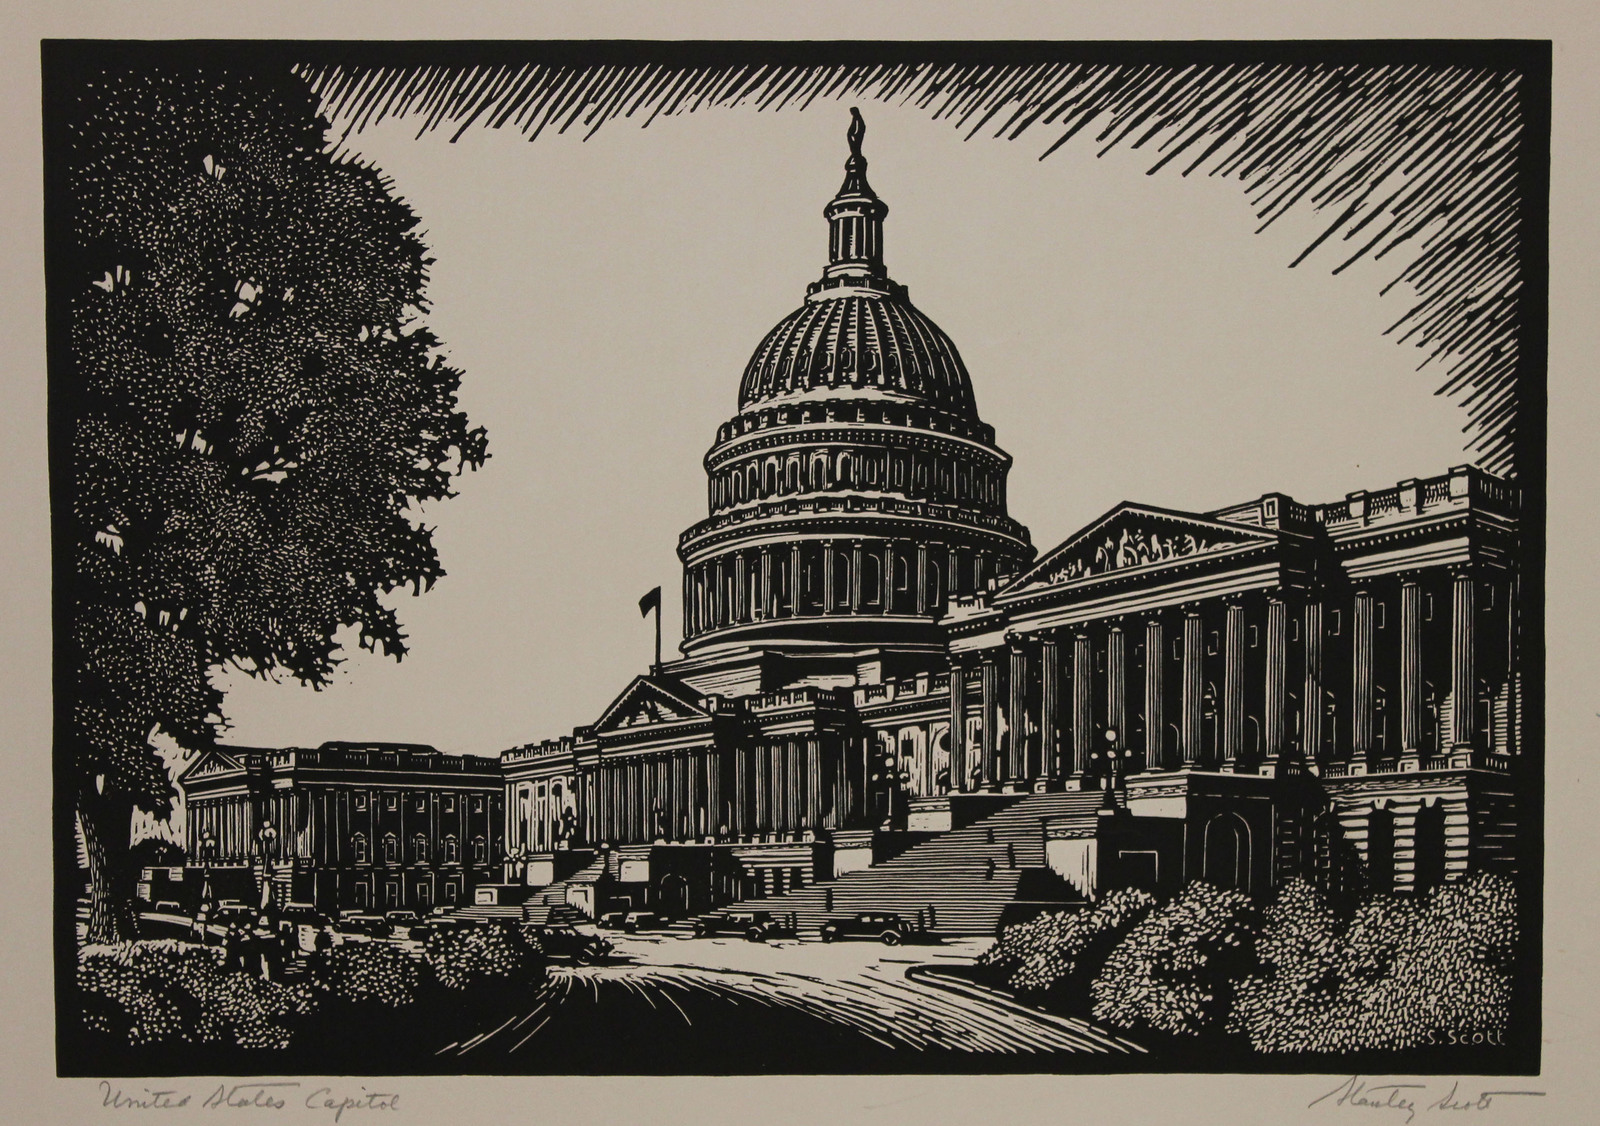 United States Capital Building in Washington, DC by Stanley Scott